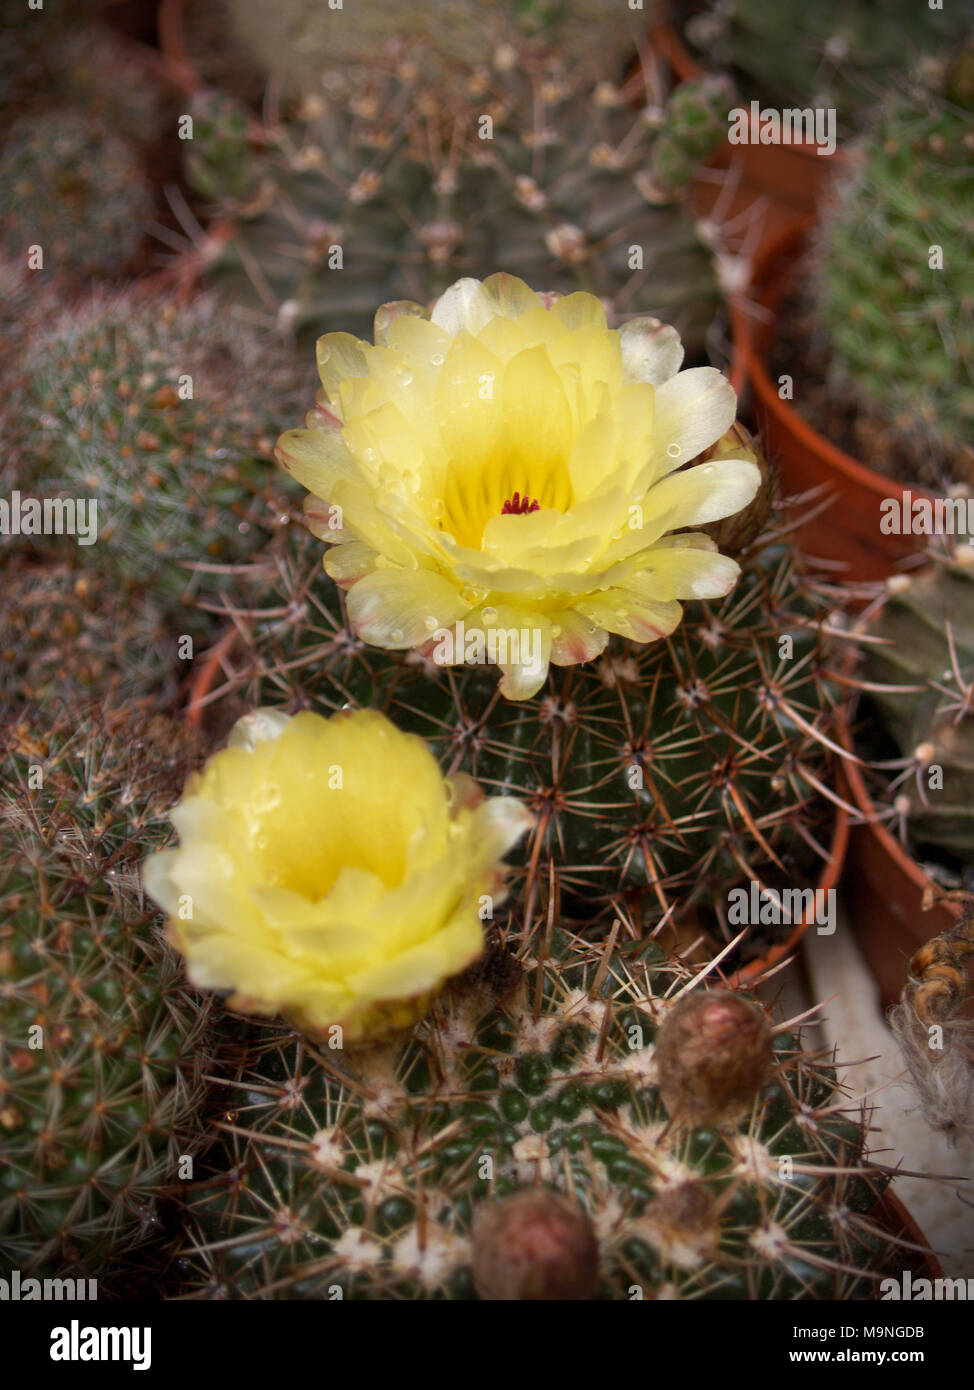 Various Cacti With Yellow Flowers Close Up Shot Stock Photo